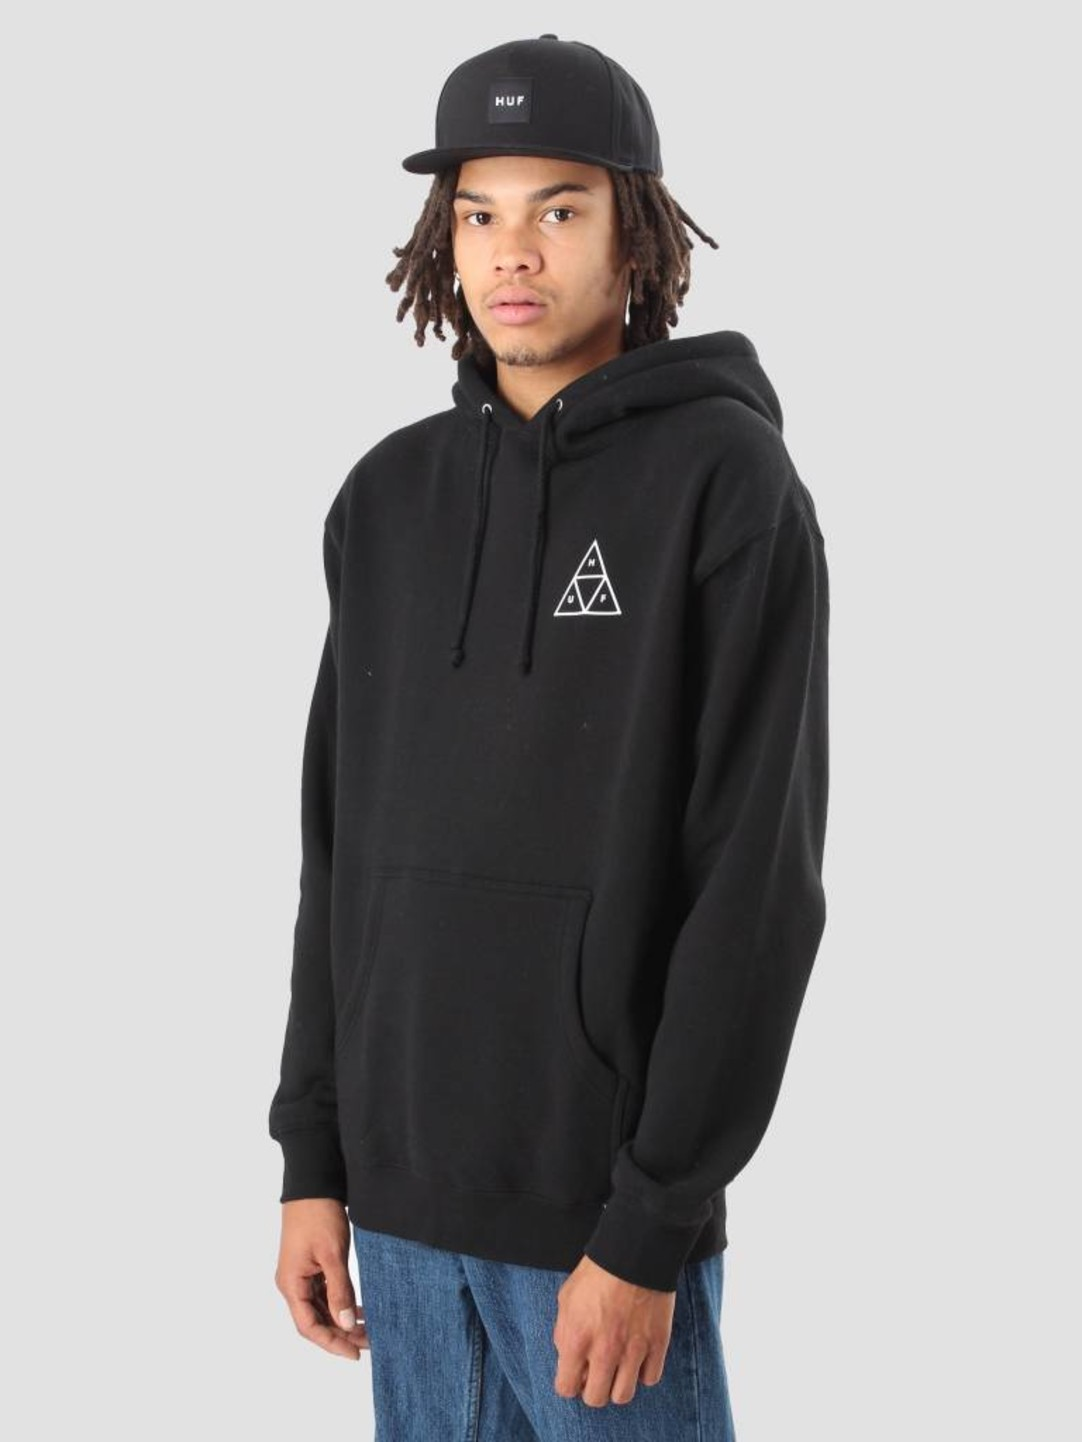 HUF HUF Triple Triangle Pullover Fleece Black Flbsc0020